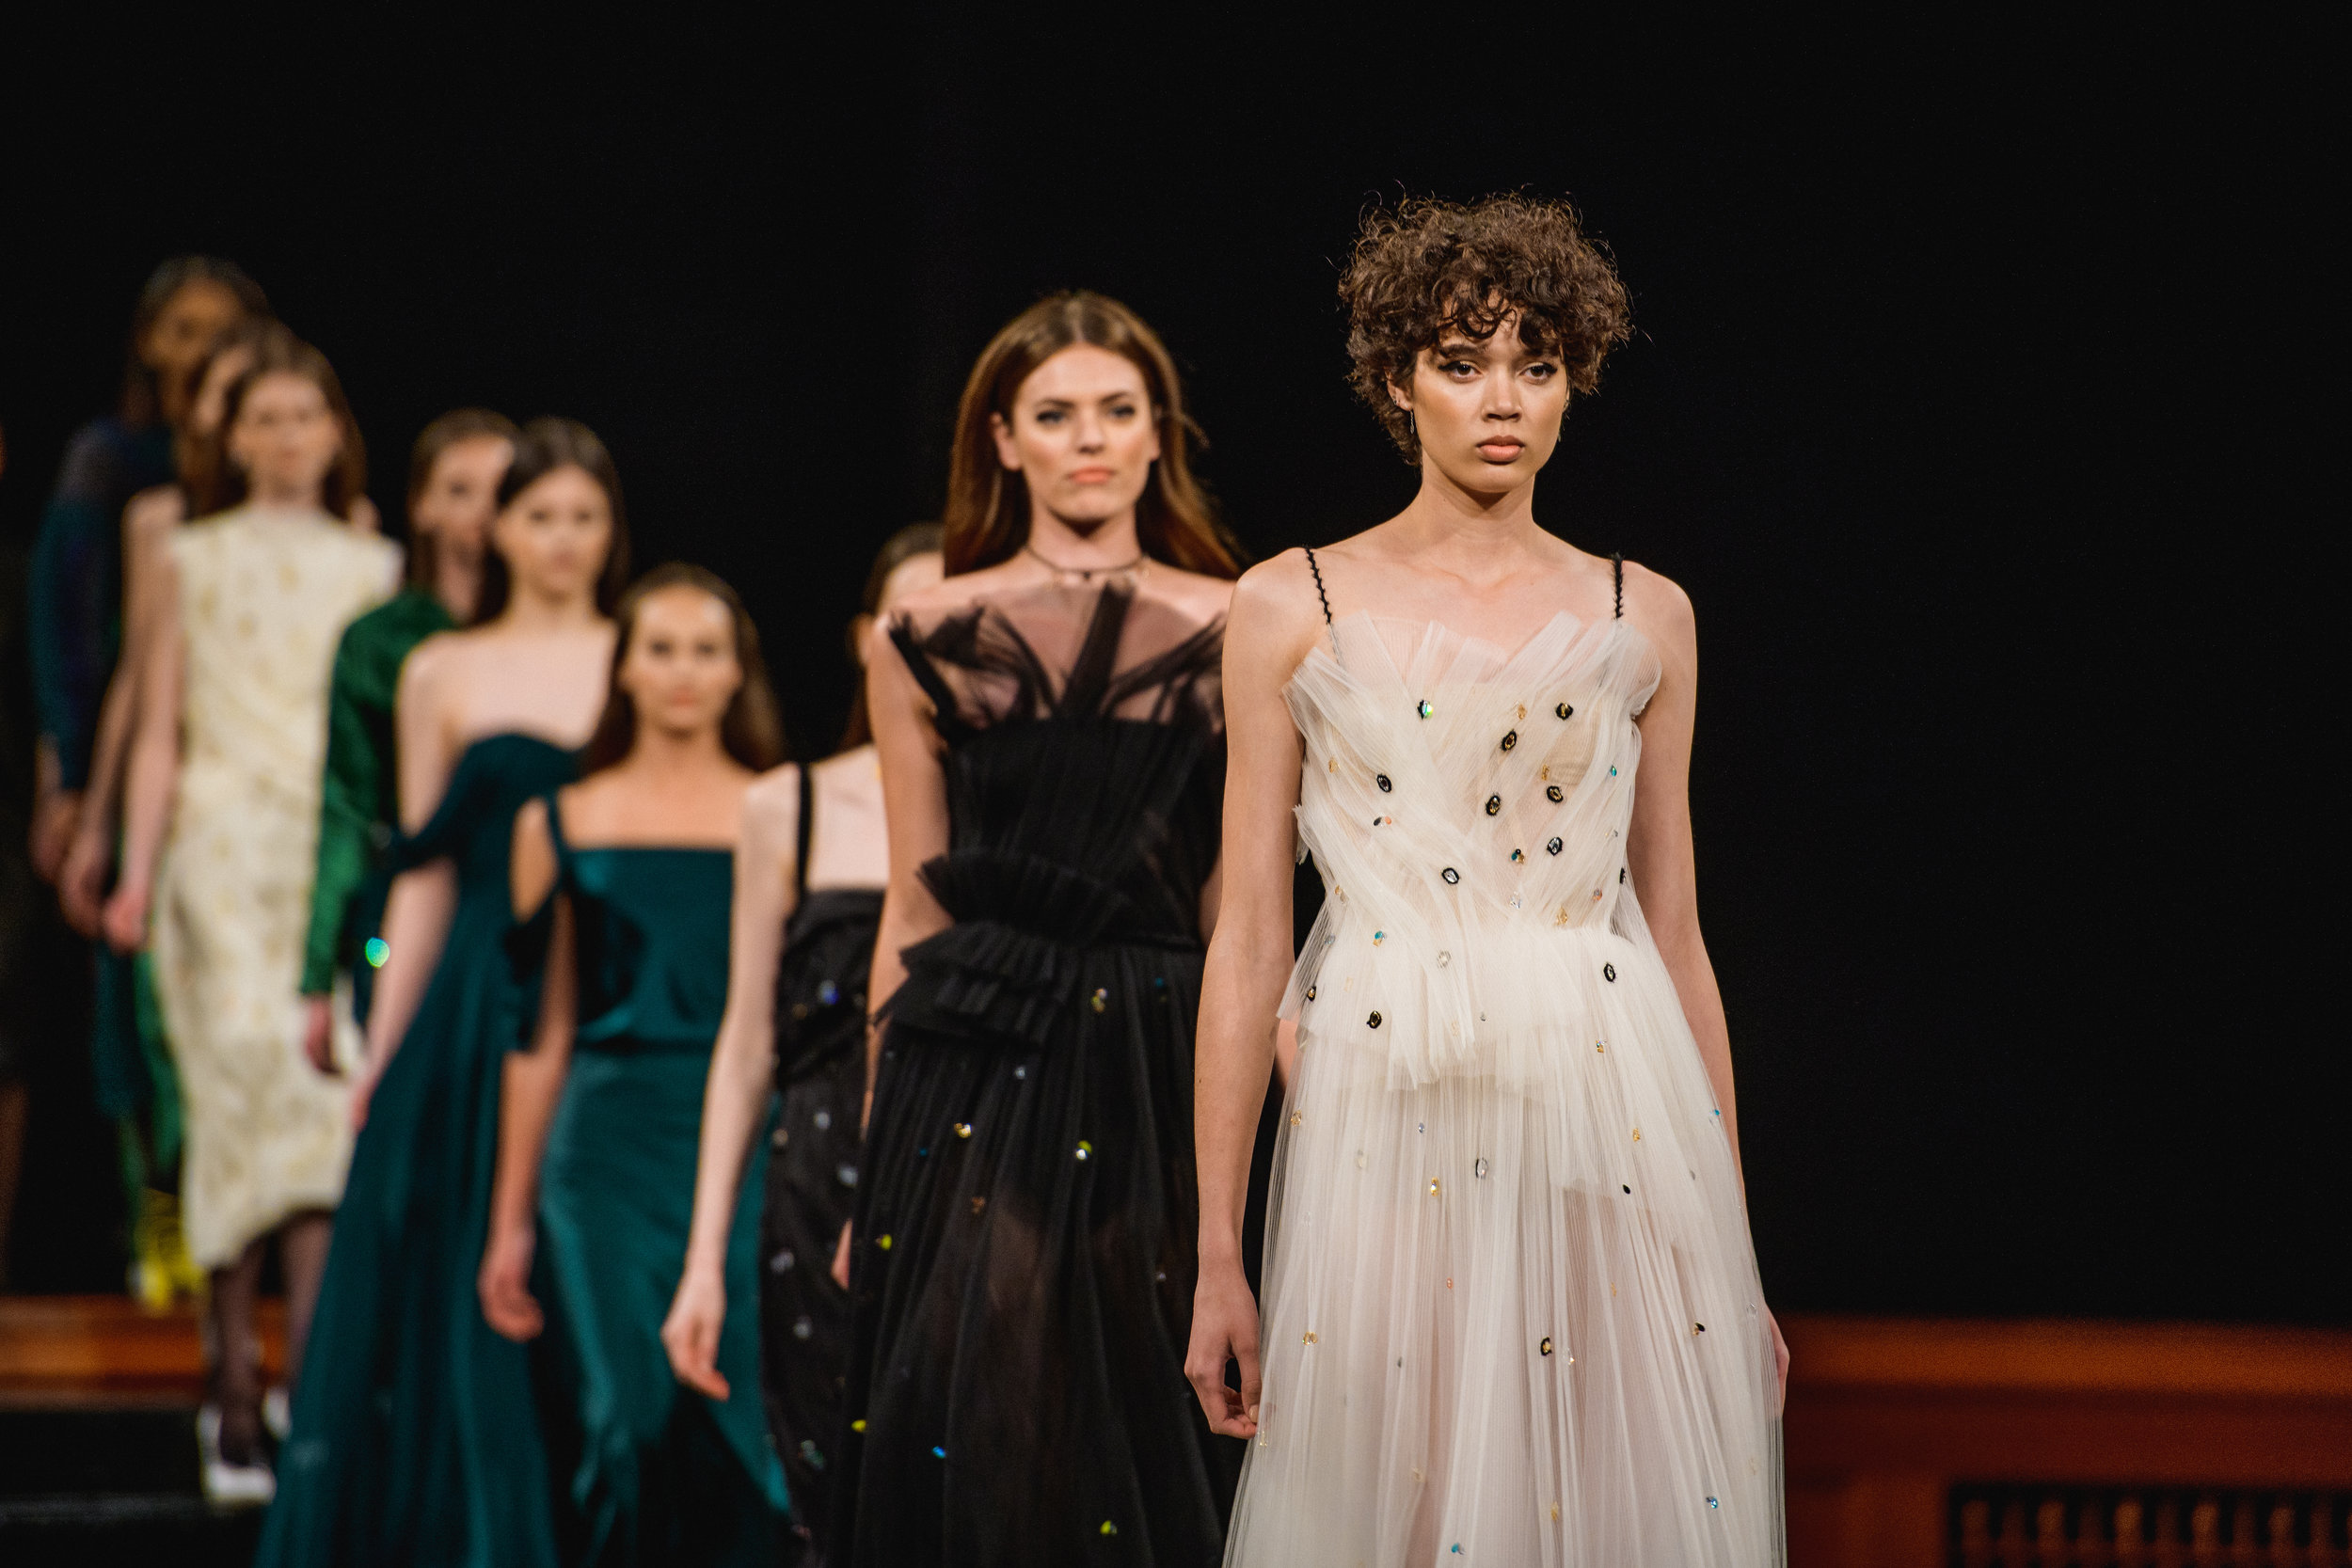 Jason Wu Fashion Show - Nashville Symphony - Details Nashville Photography